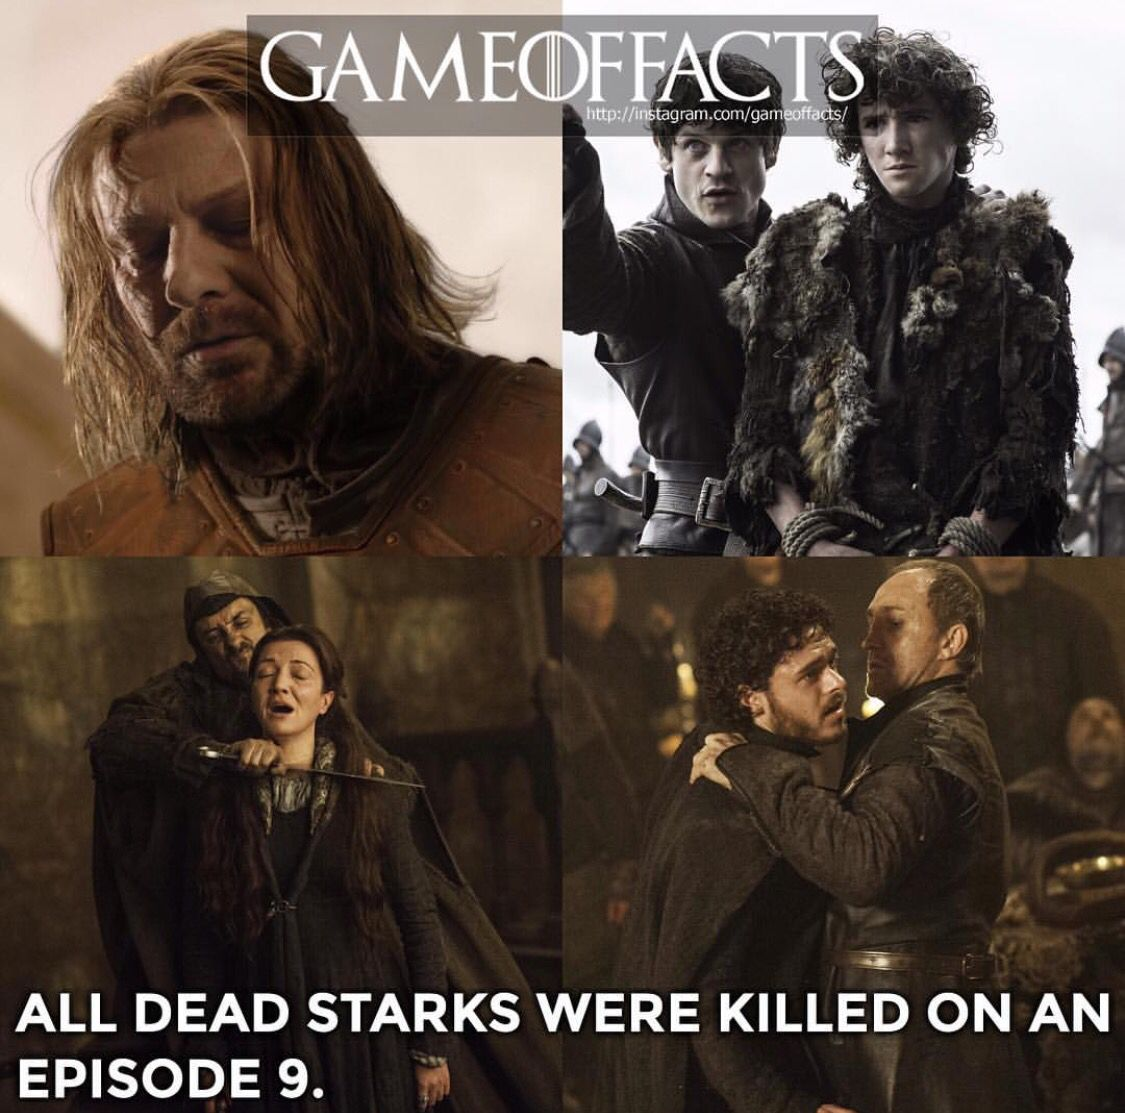 Episode 9 is not kind to House Stark. Game of Thrones facts. ASOIAF